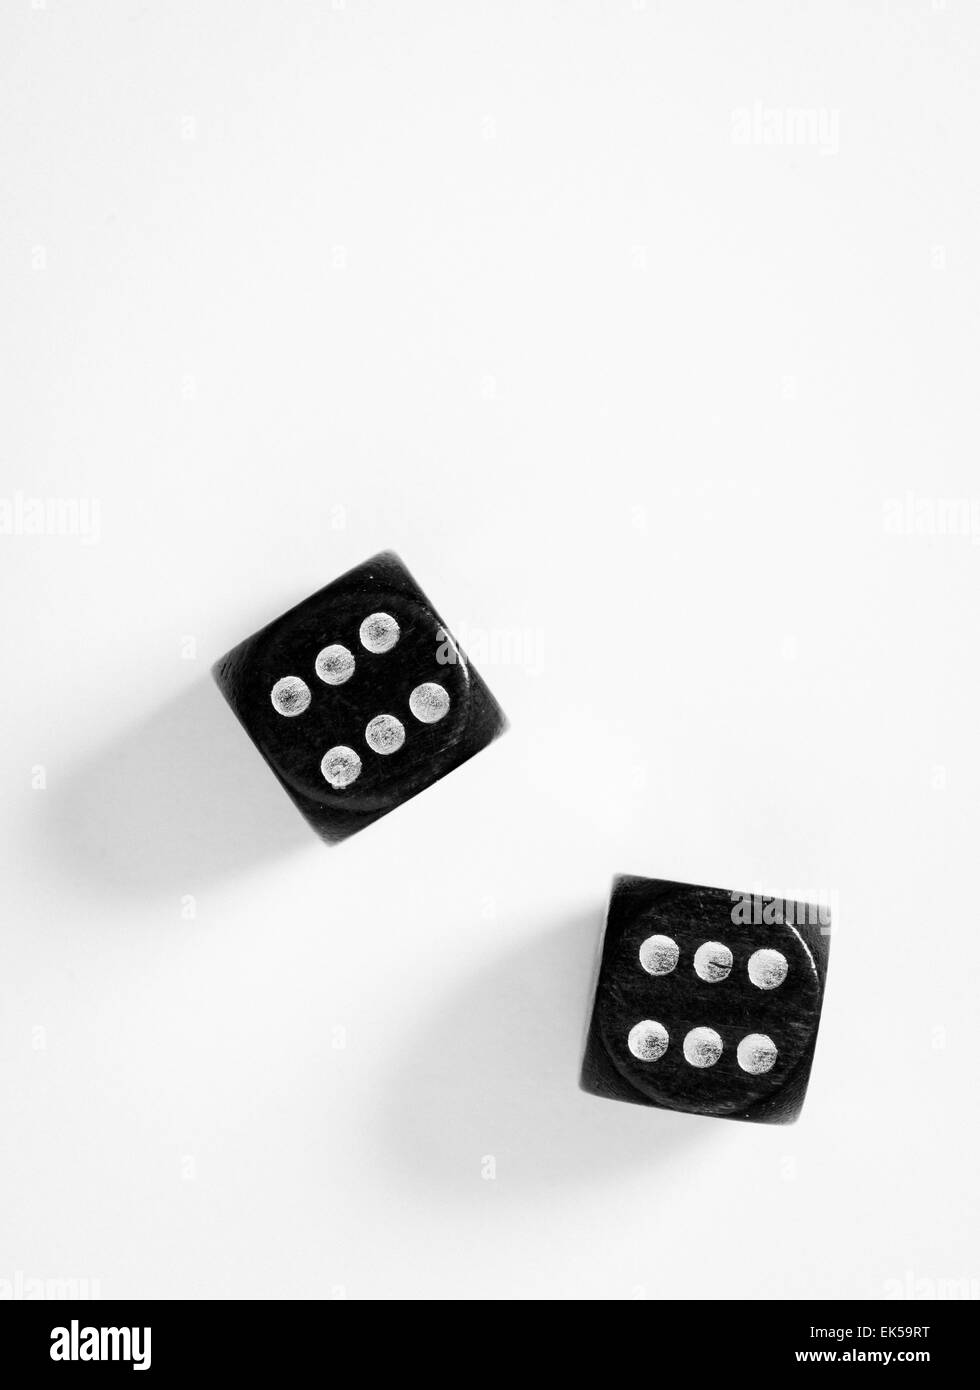 Top view of a pair of black dice on white background with copy space. Double sixes. - Stock Image